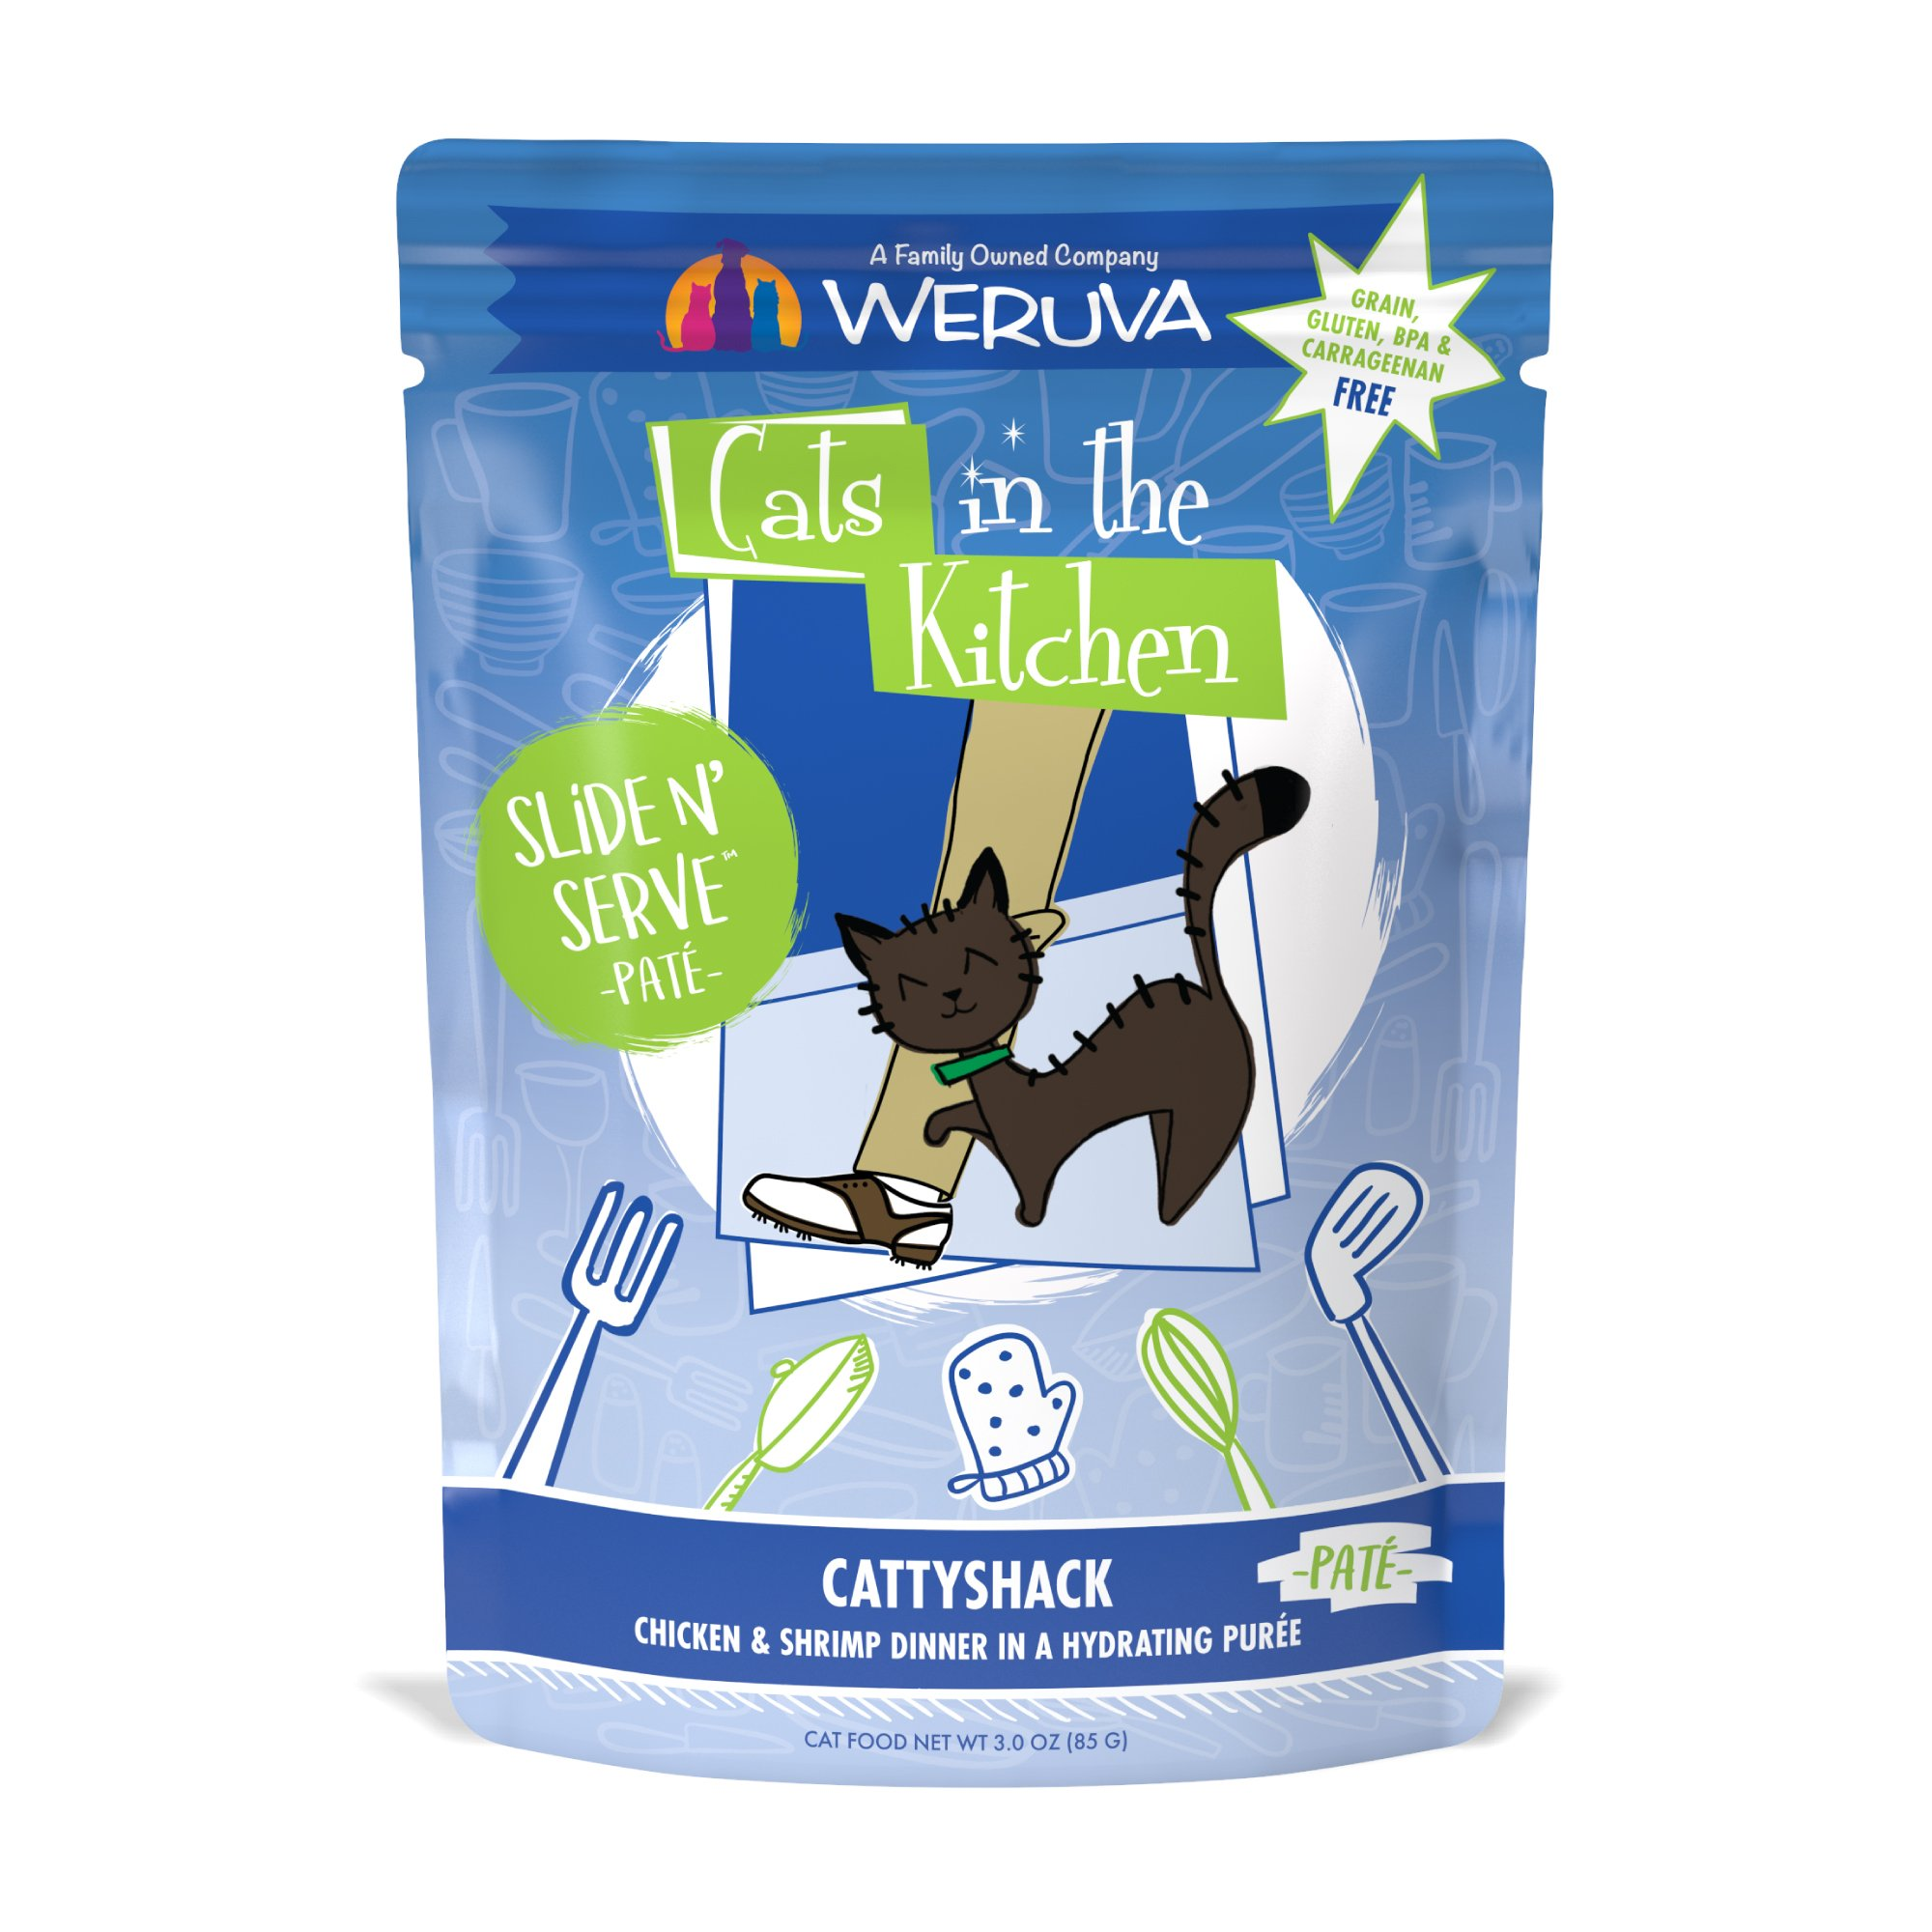 Cats In The Kitchen Pate Cattyshack Chicken Shrimp Dinner In A Hydrating Puree Wet Cat Food 3 Oz Case Of 12 Petco